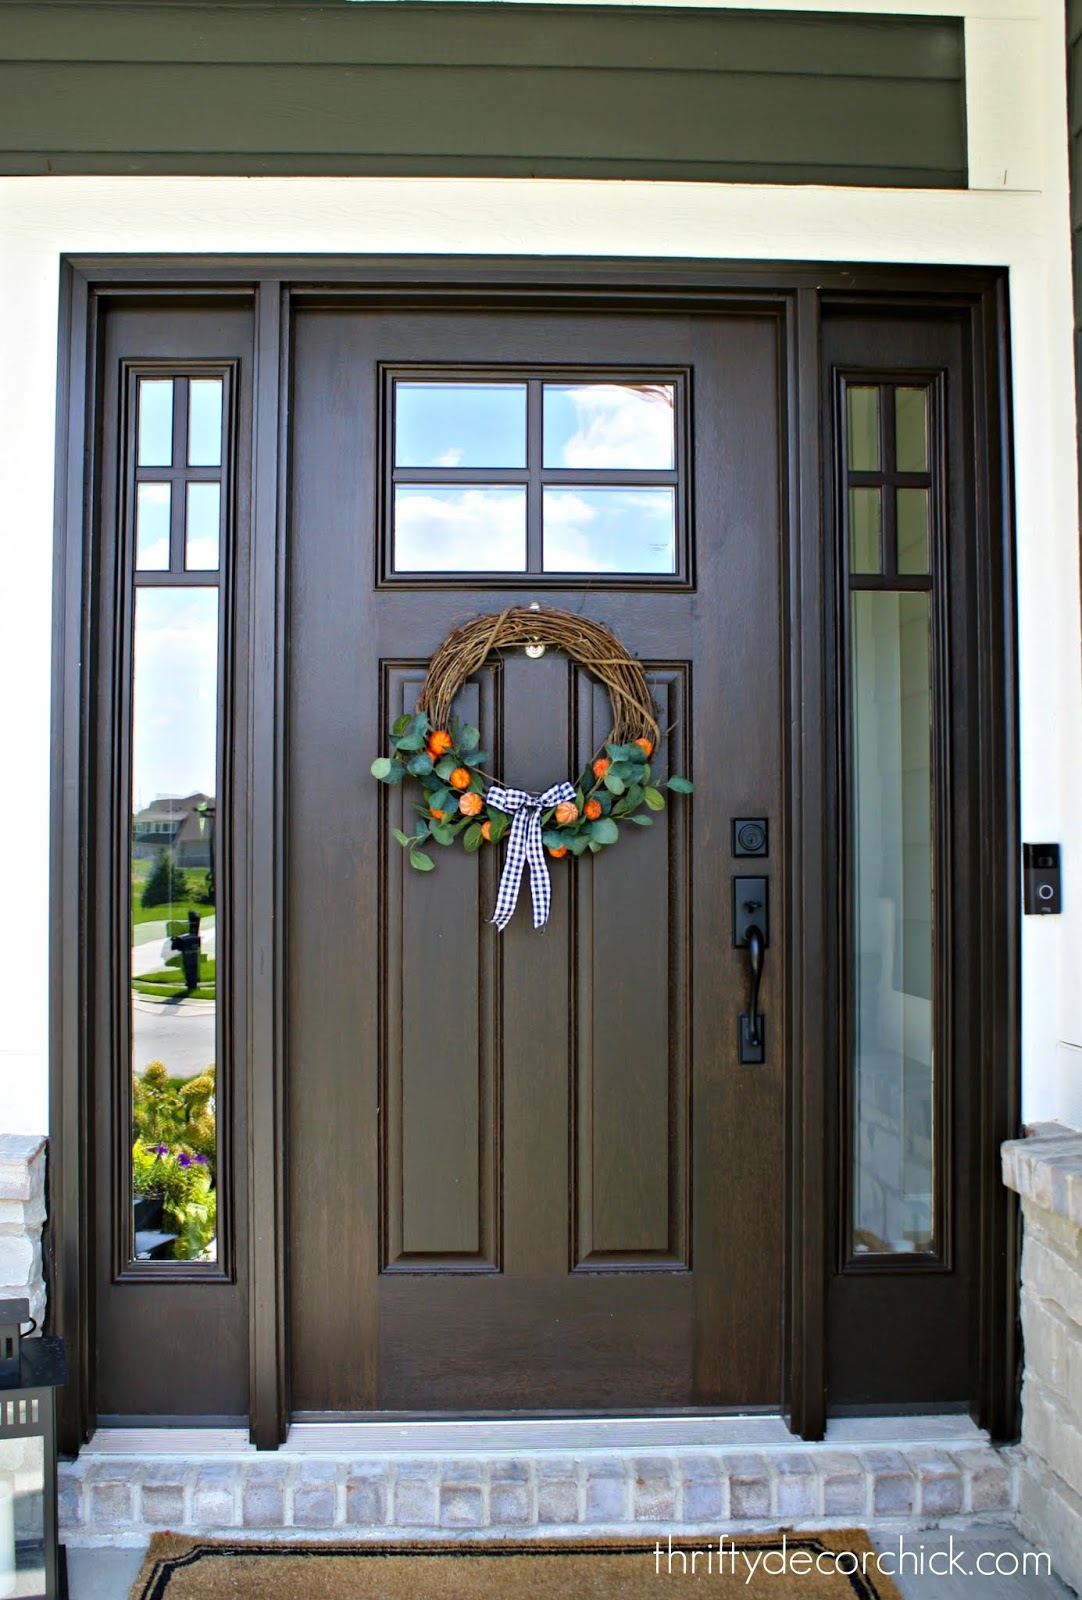 Craftsman stained door with windows and sidelights